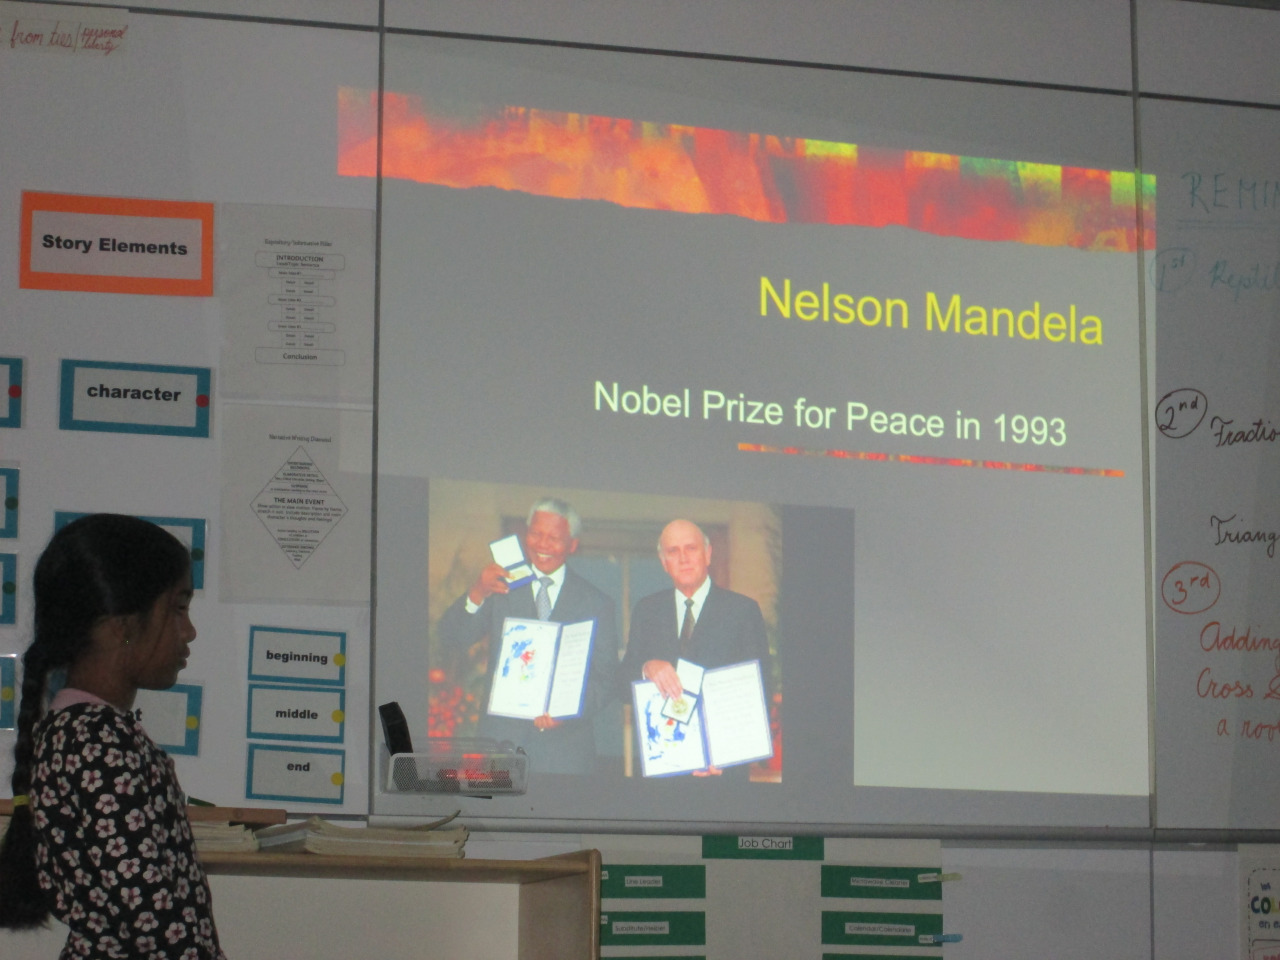 As part of the Lower Elementary East class study of the continent of Africa, a third grade student shared a presentation about Nelson Mandela. Her PowerPoint presentation included the history of Mandela's life and the impact he made on others in South Africa.